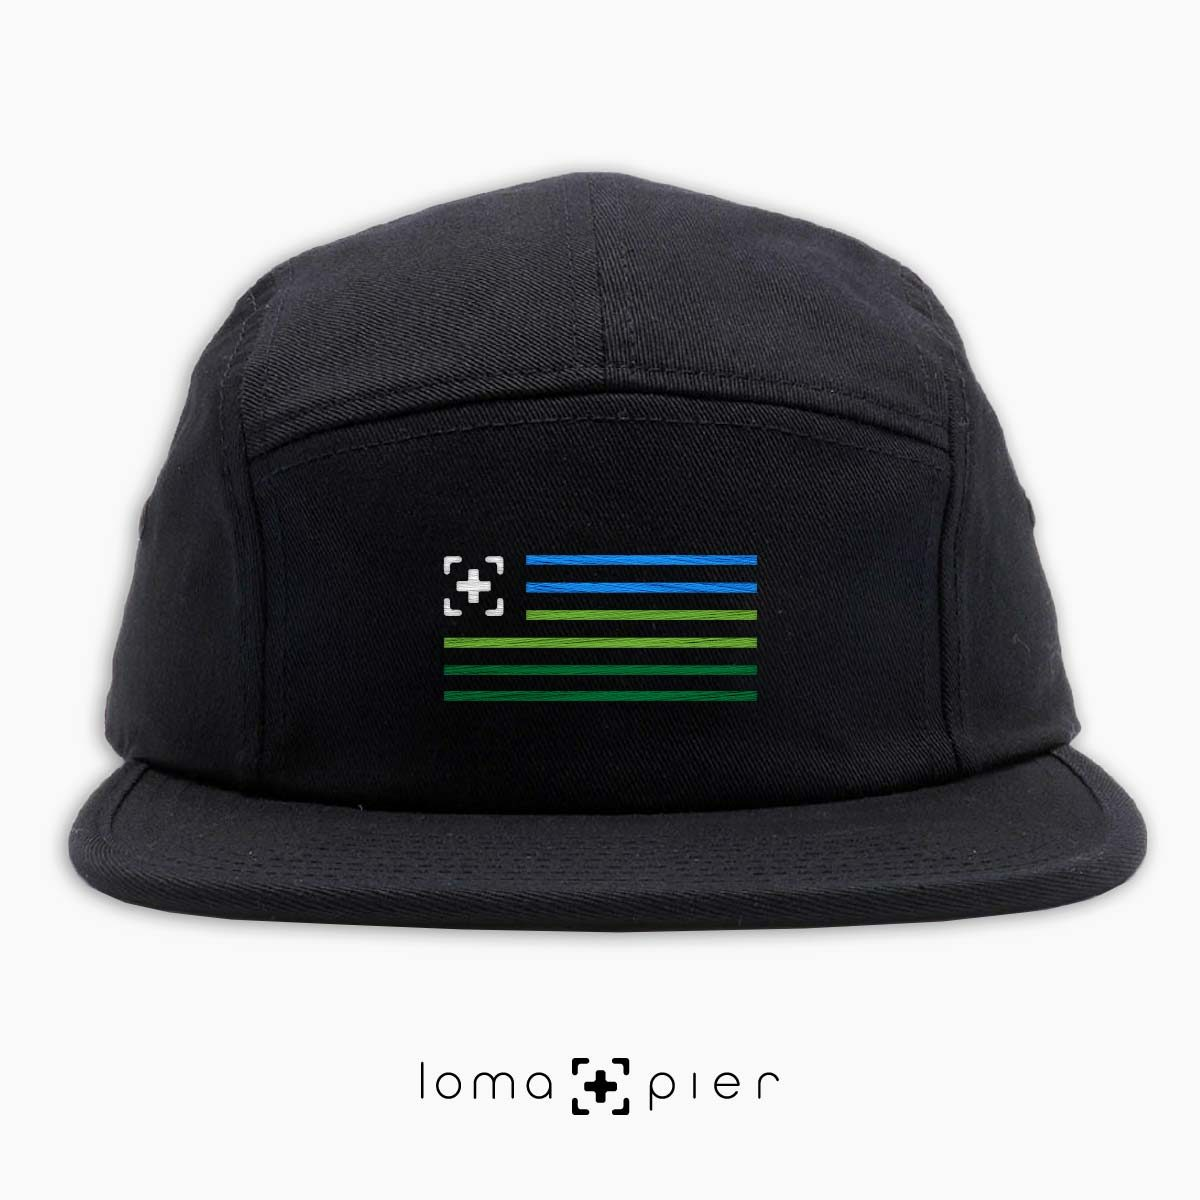 loma+stripes icon embroidered on a black cotton 5-panel hat by loma+pier hat store